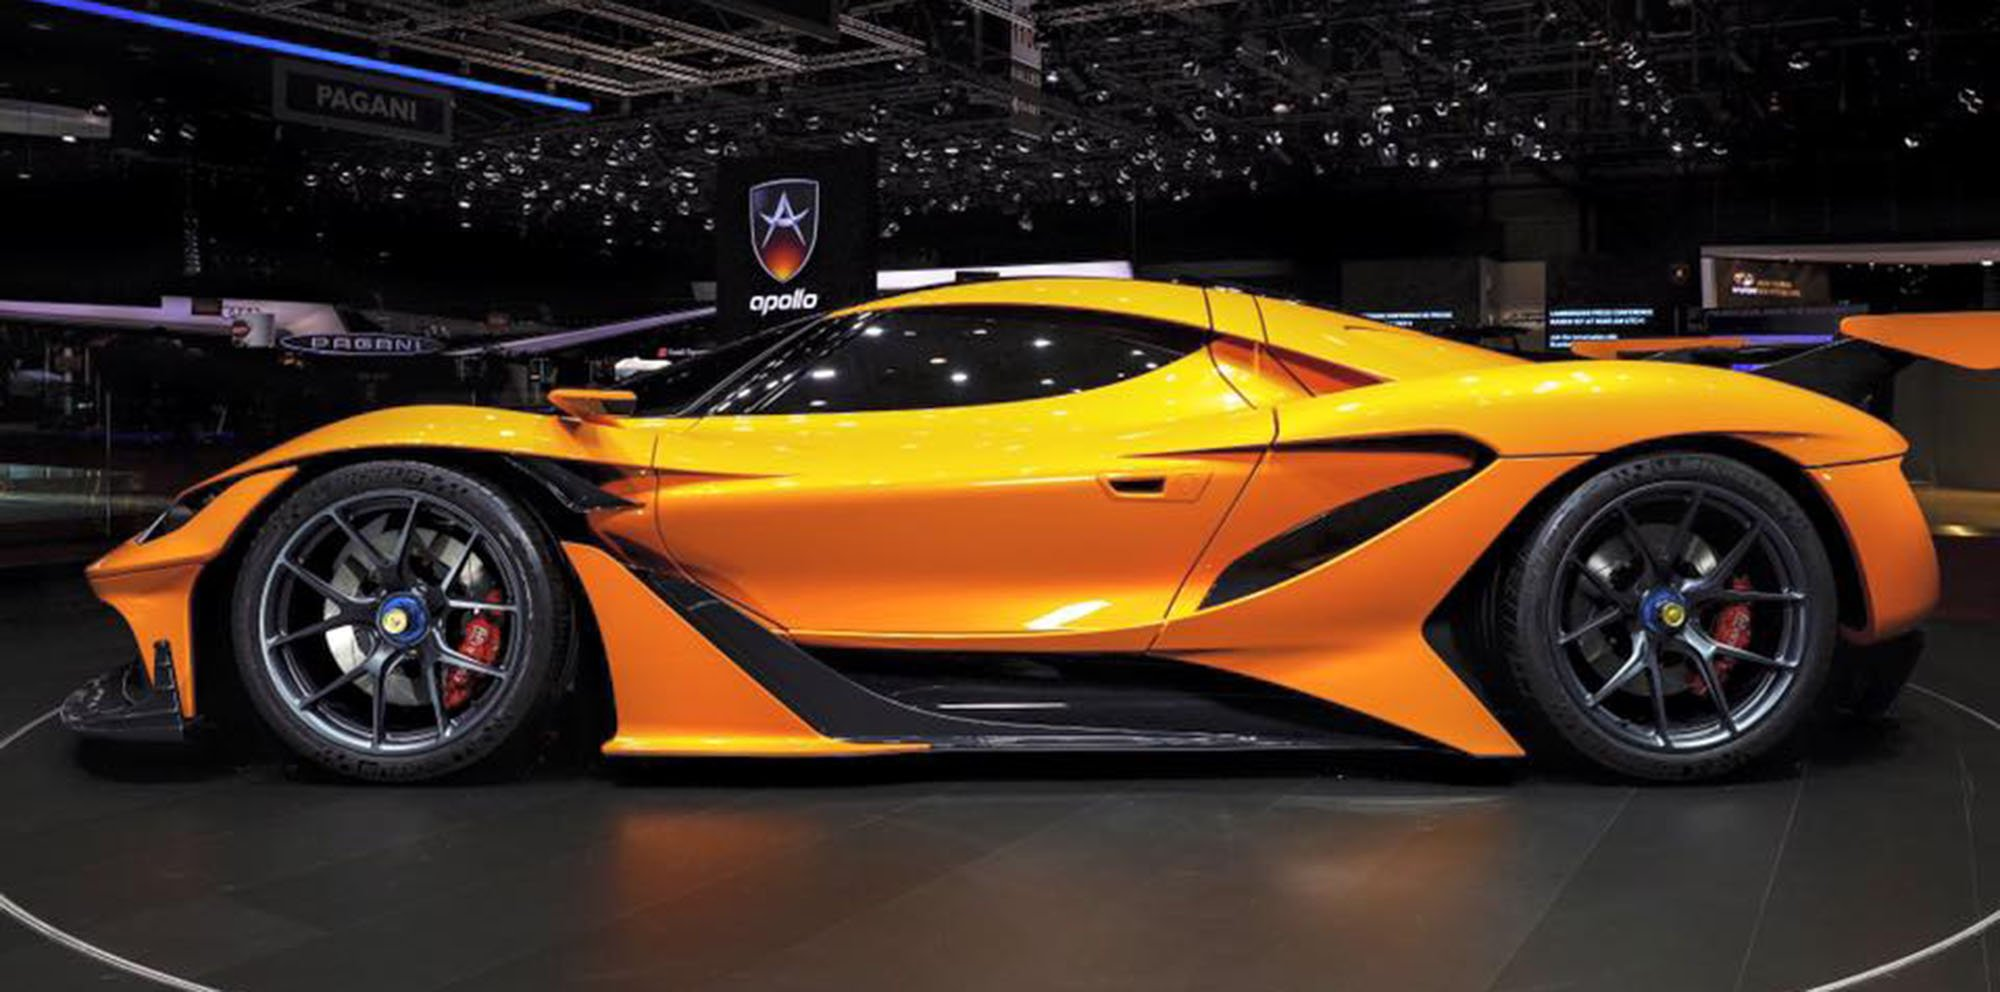 Apollo Arrow supercar: First new supercar from revived ...